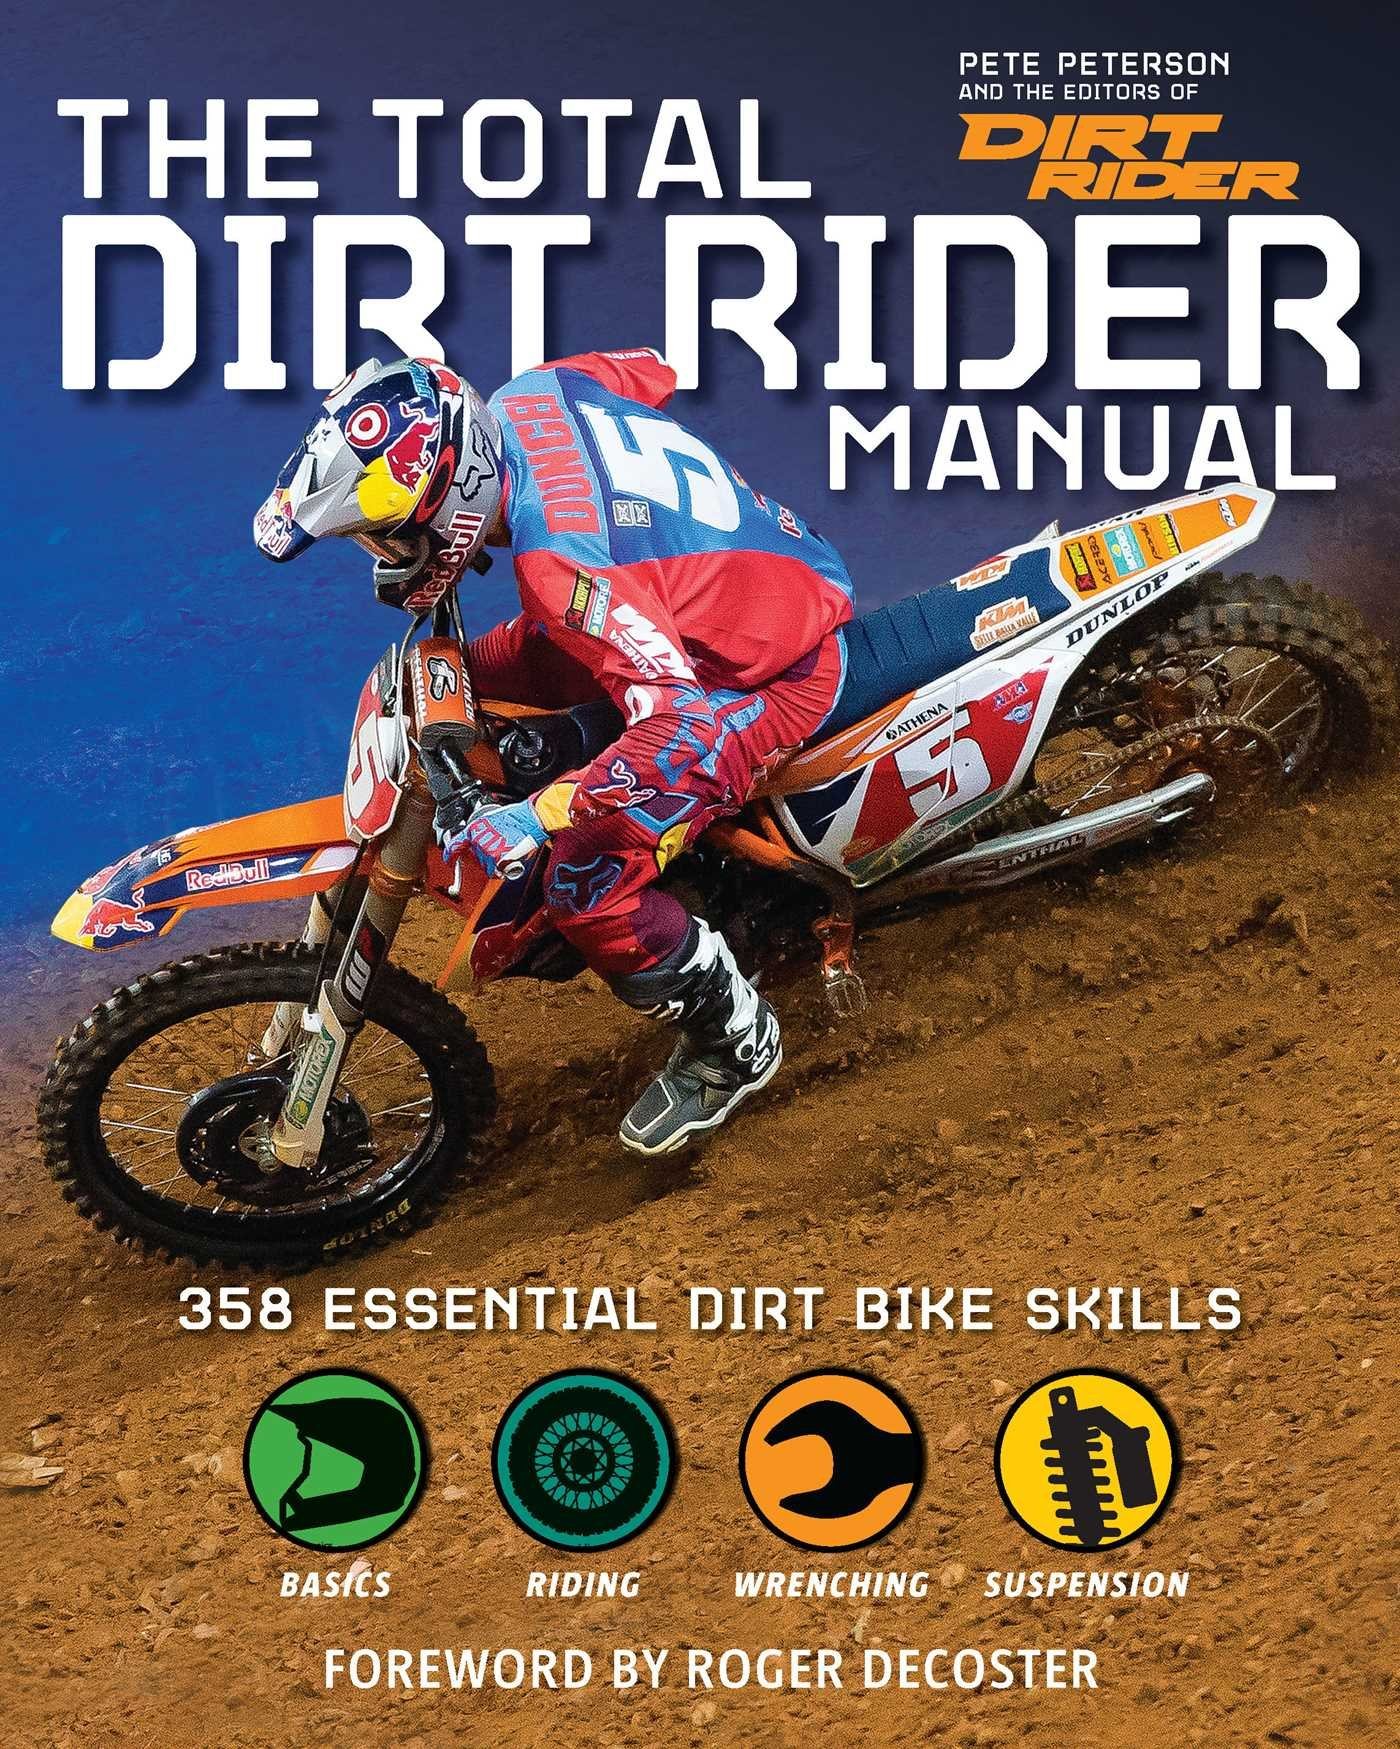 The Total Dirt Rider Manual (Dirt Rider): 358 Essential Dirt Bike Skills:  Pete Peterson, The Editors of Dirt Rider: 9781616287276: Amazon.com: Books